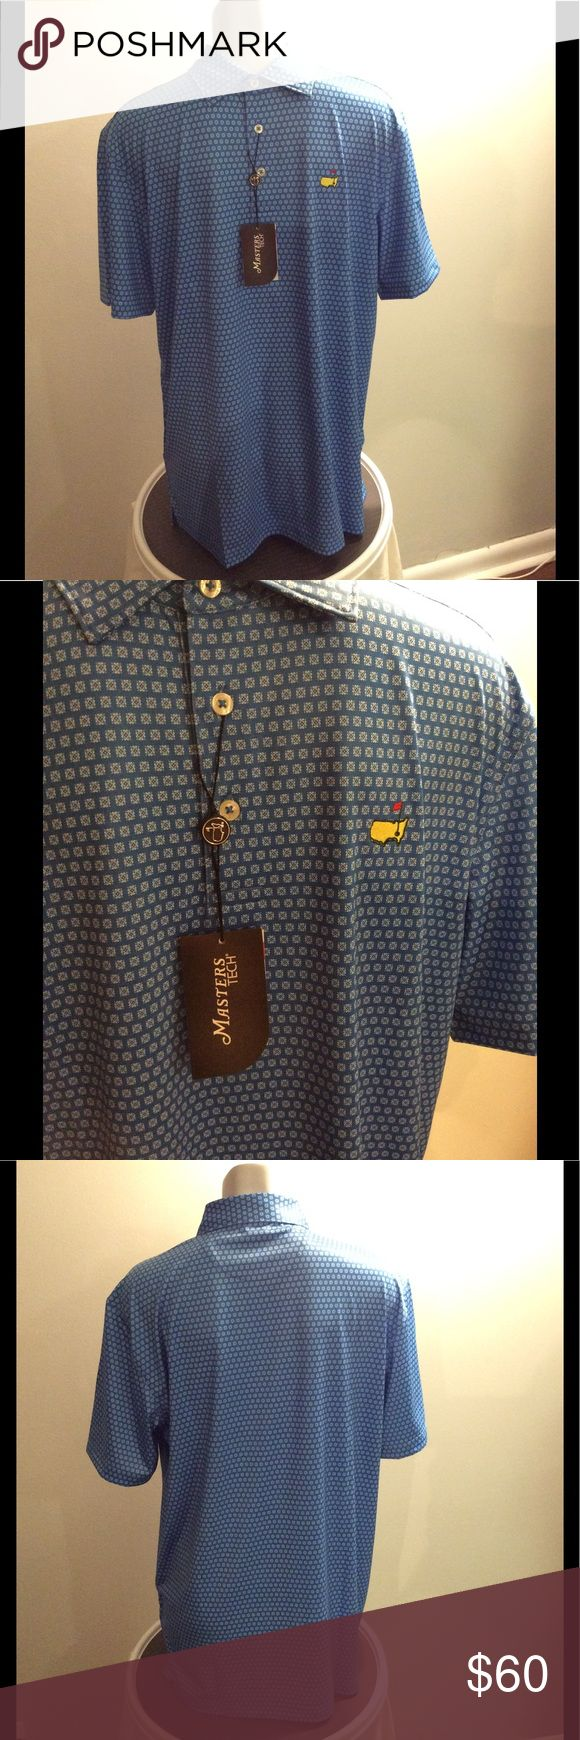 PGA Masters Tech Men's Patterned Casual Golf Polo *Measured flat* Across shoulders: 19in. Sleeve length: 10in top to bottom hem(back): 30in PGA Masters Tech Shirts Polos